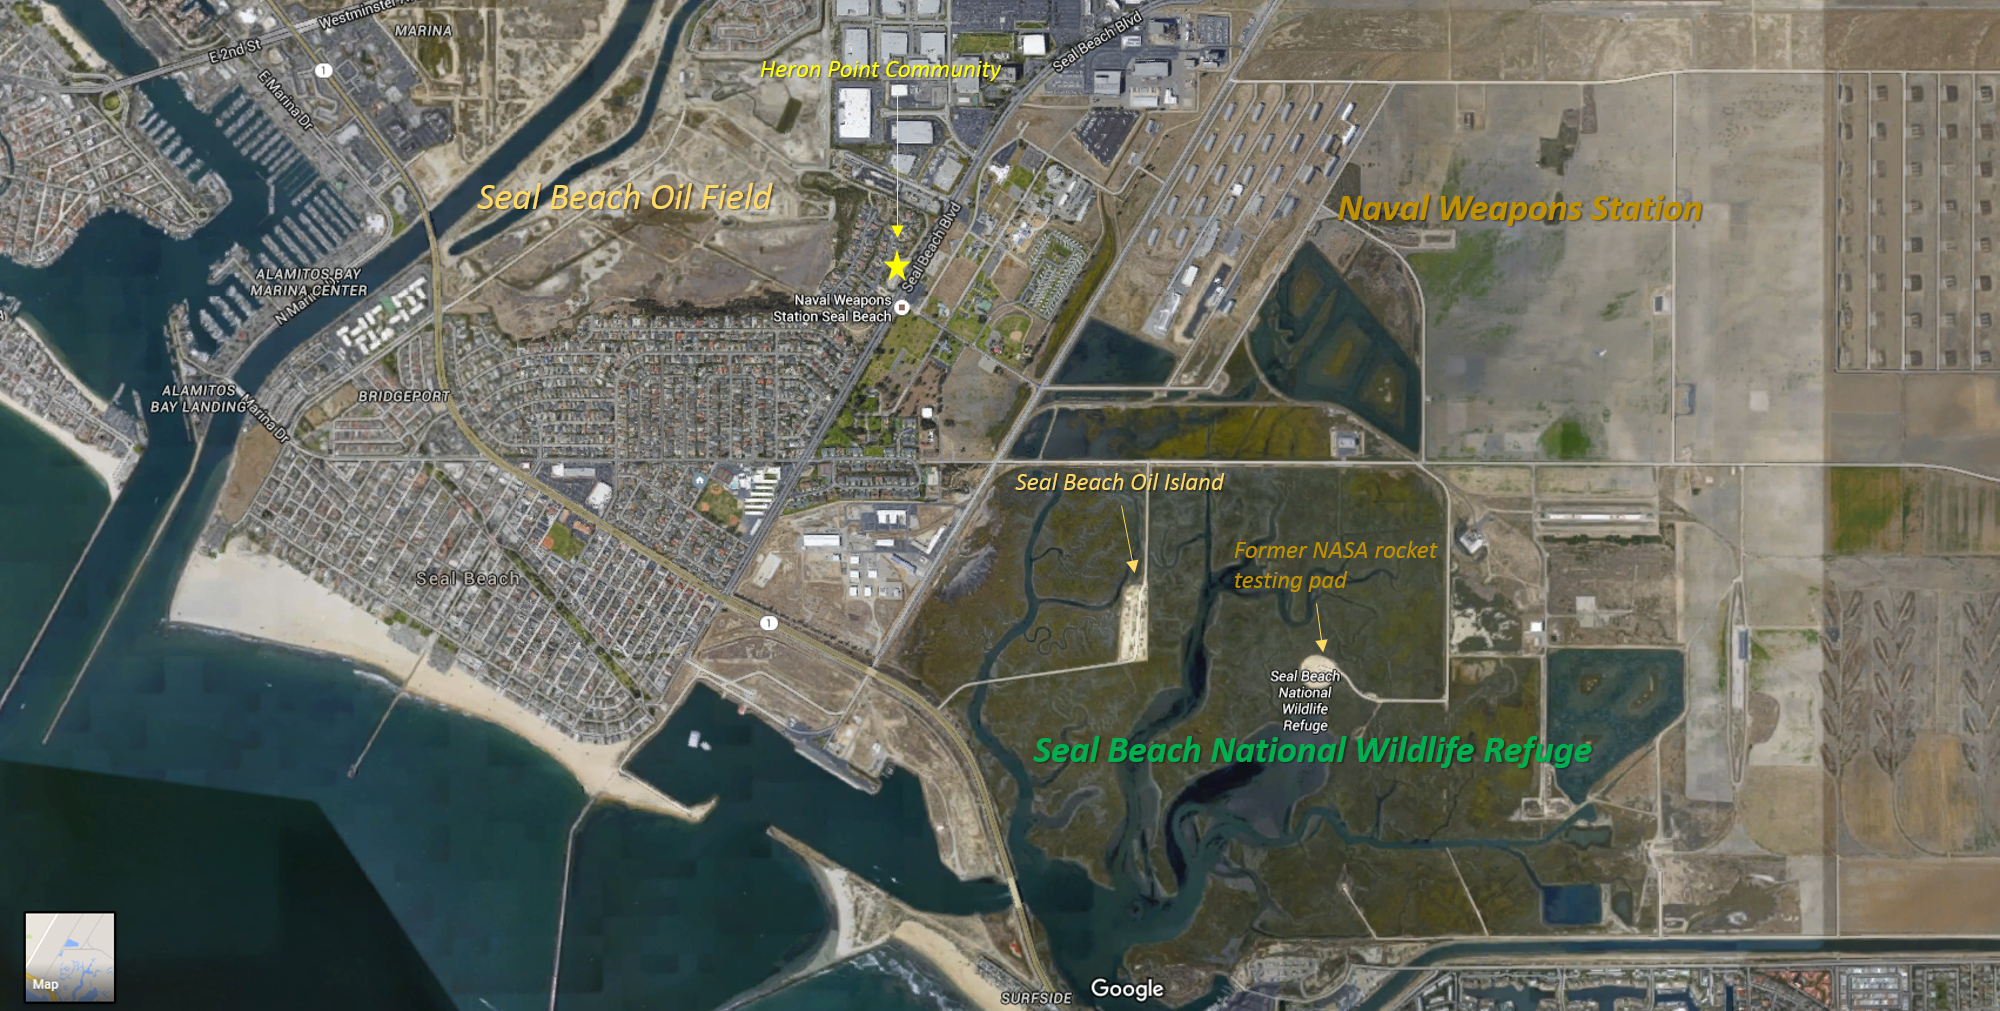 Greater Seal Beach Oil Field Area